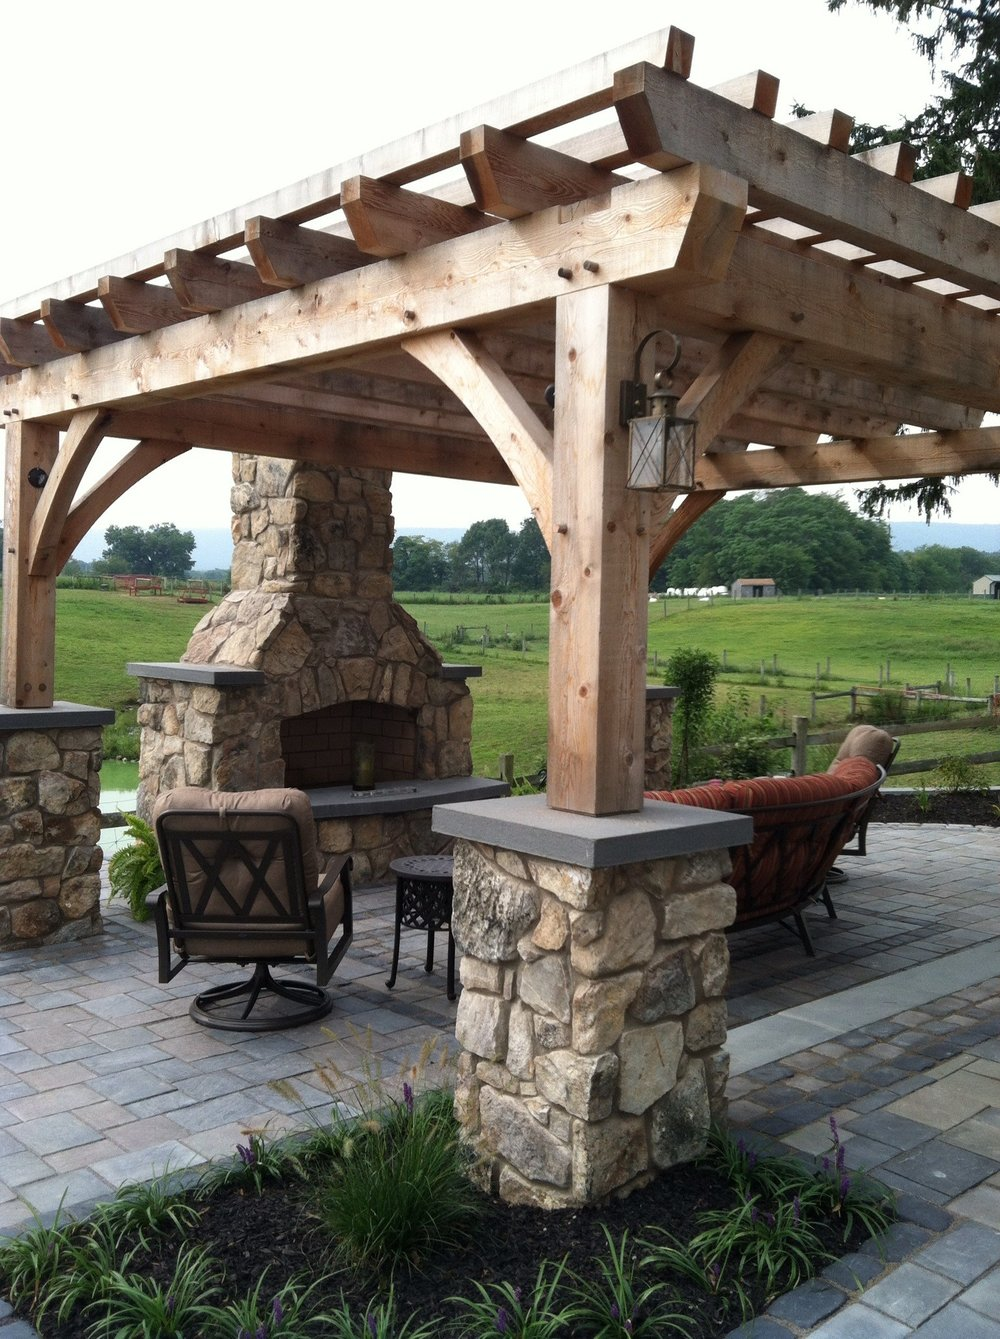 Top landscape design with an outdoor fireplace in Lebanon, PA